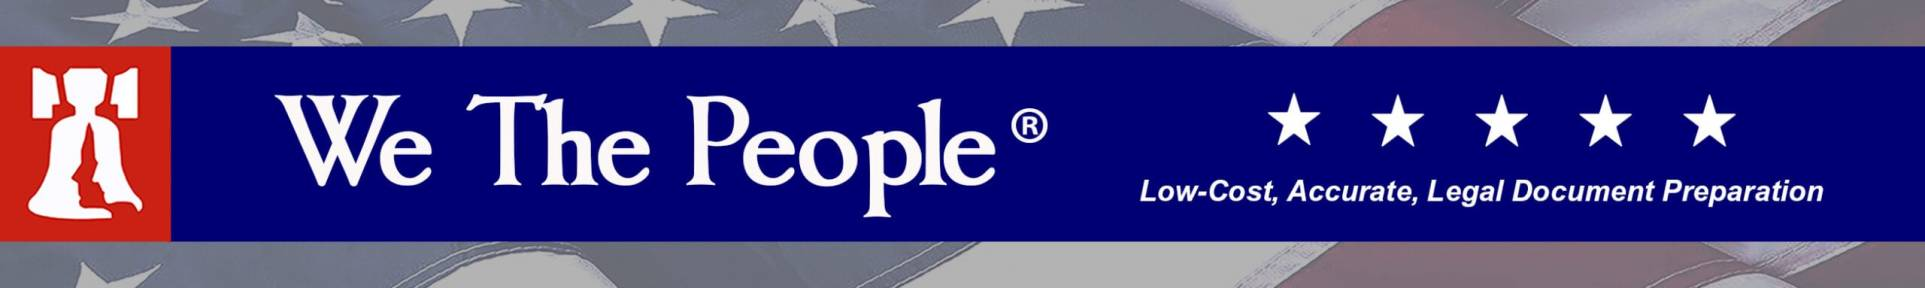 We The People USA Banner